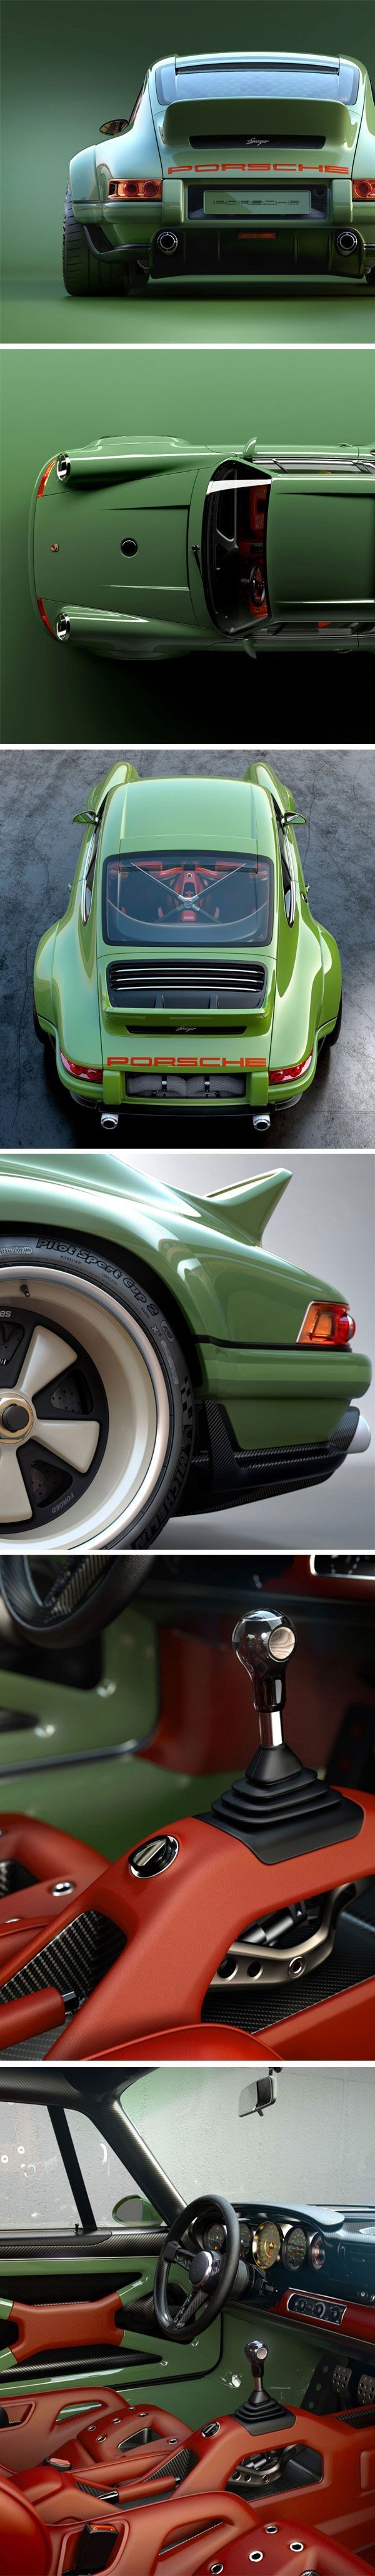 Pin by Anthony Sorrentino on cars & motorcycles | Custom